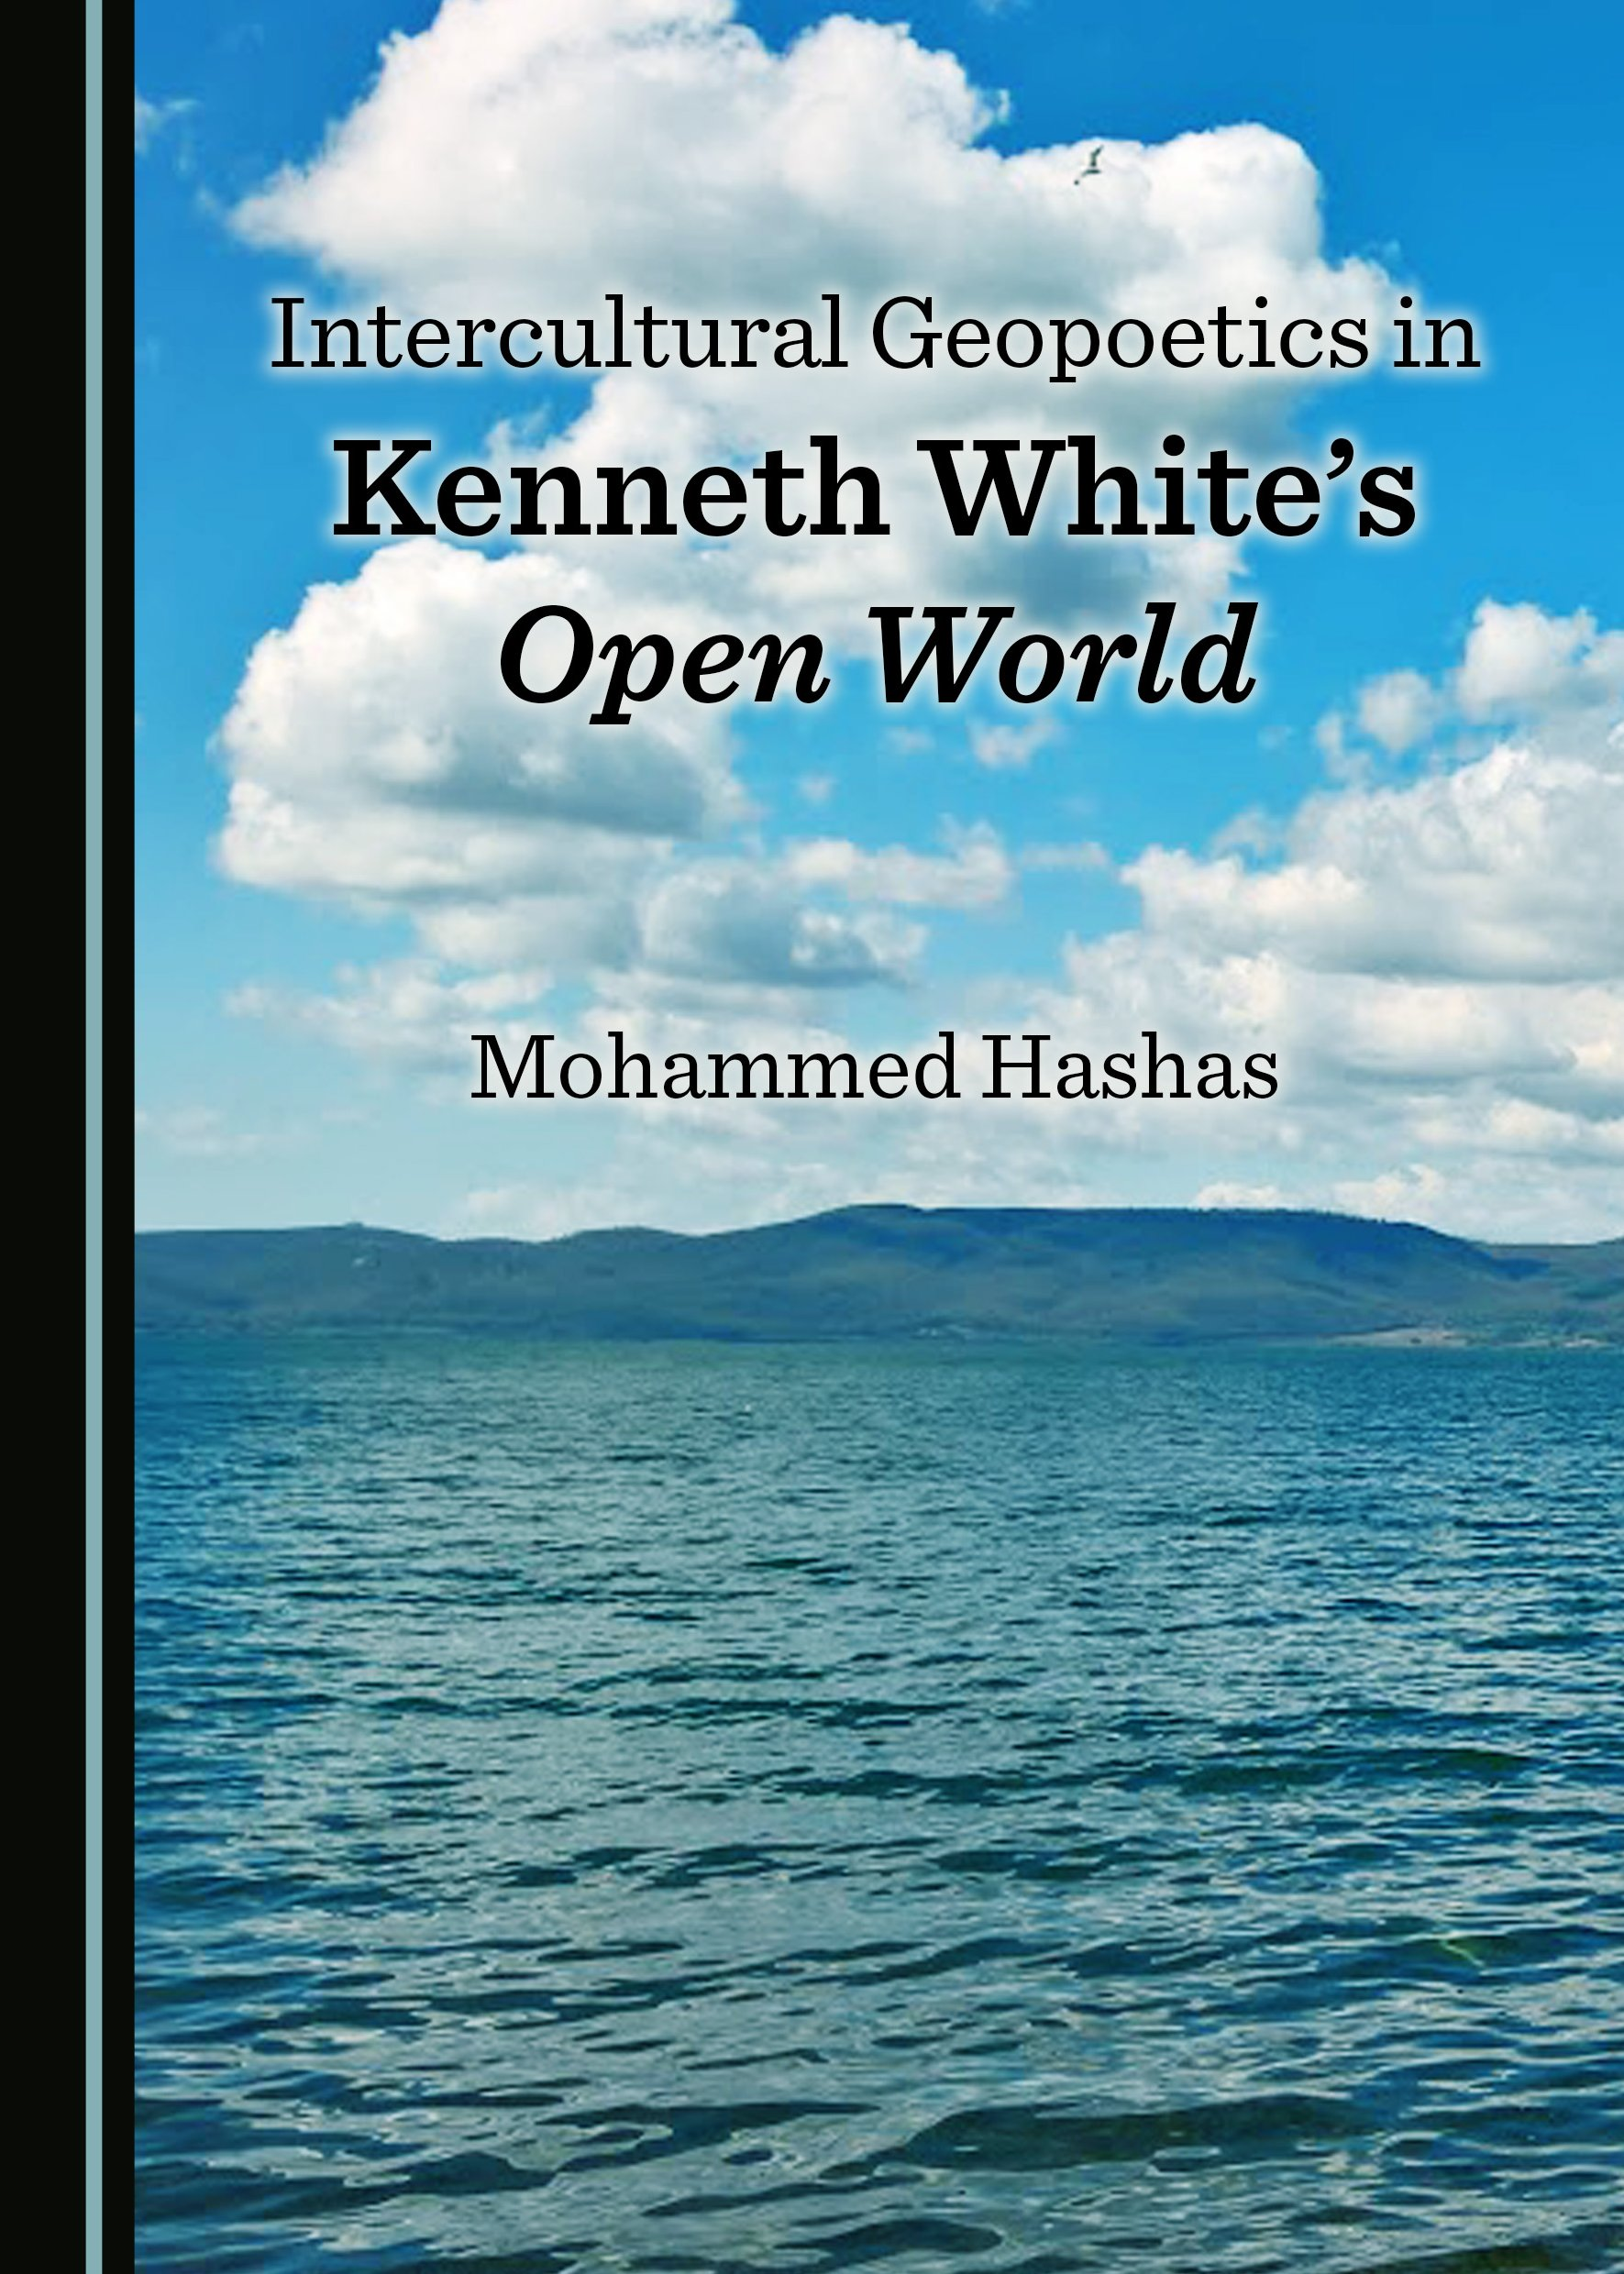 Intercultural Geopoetics in Kenneth White's Open World